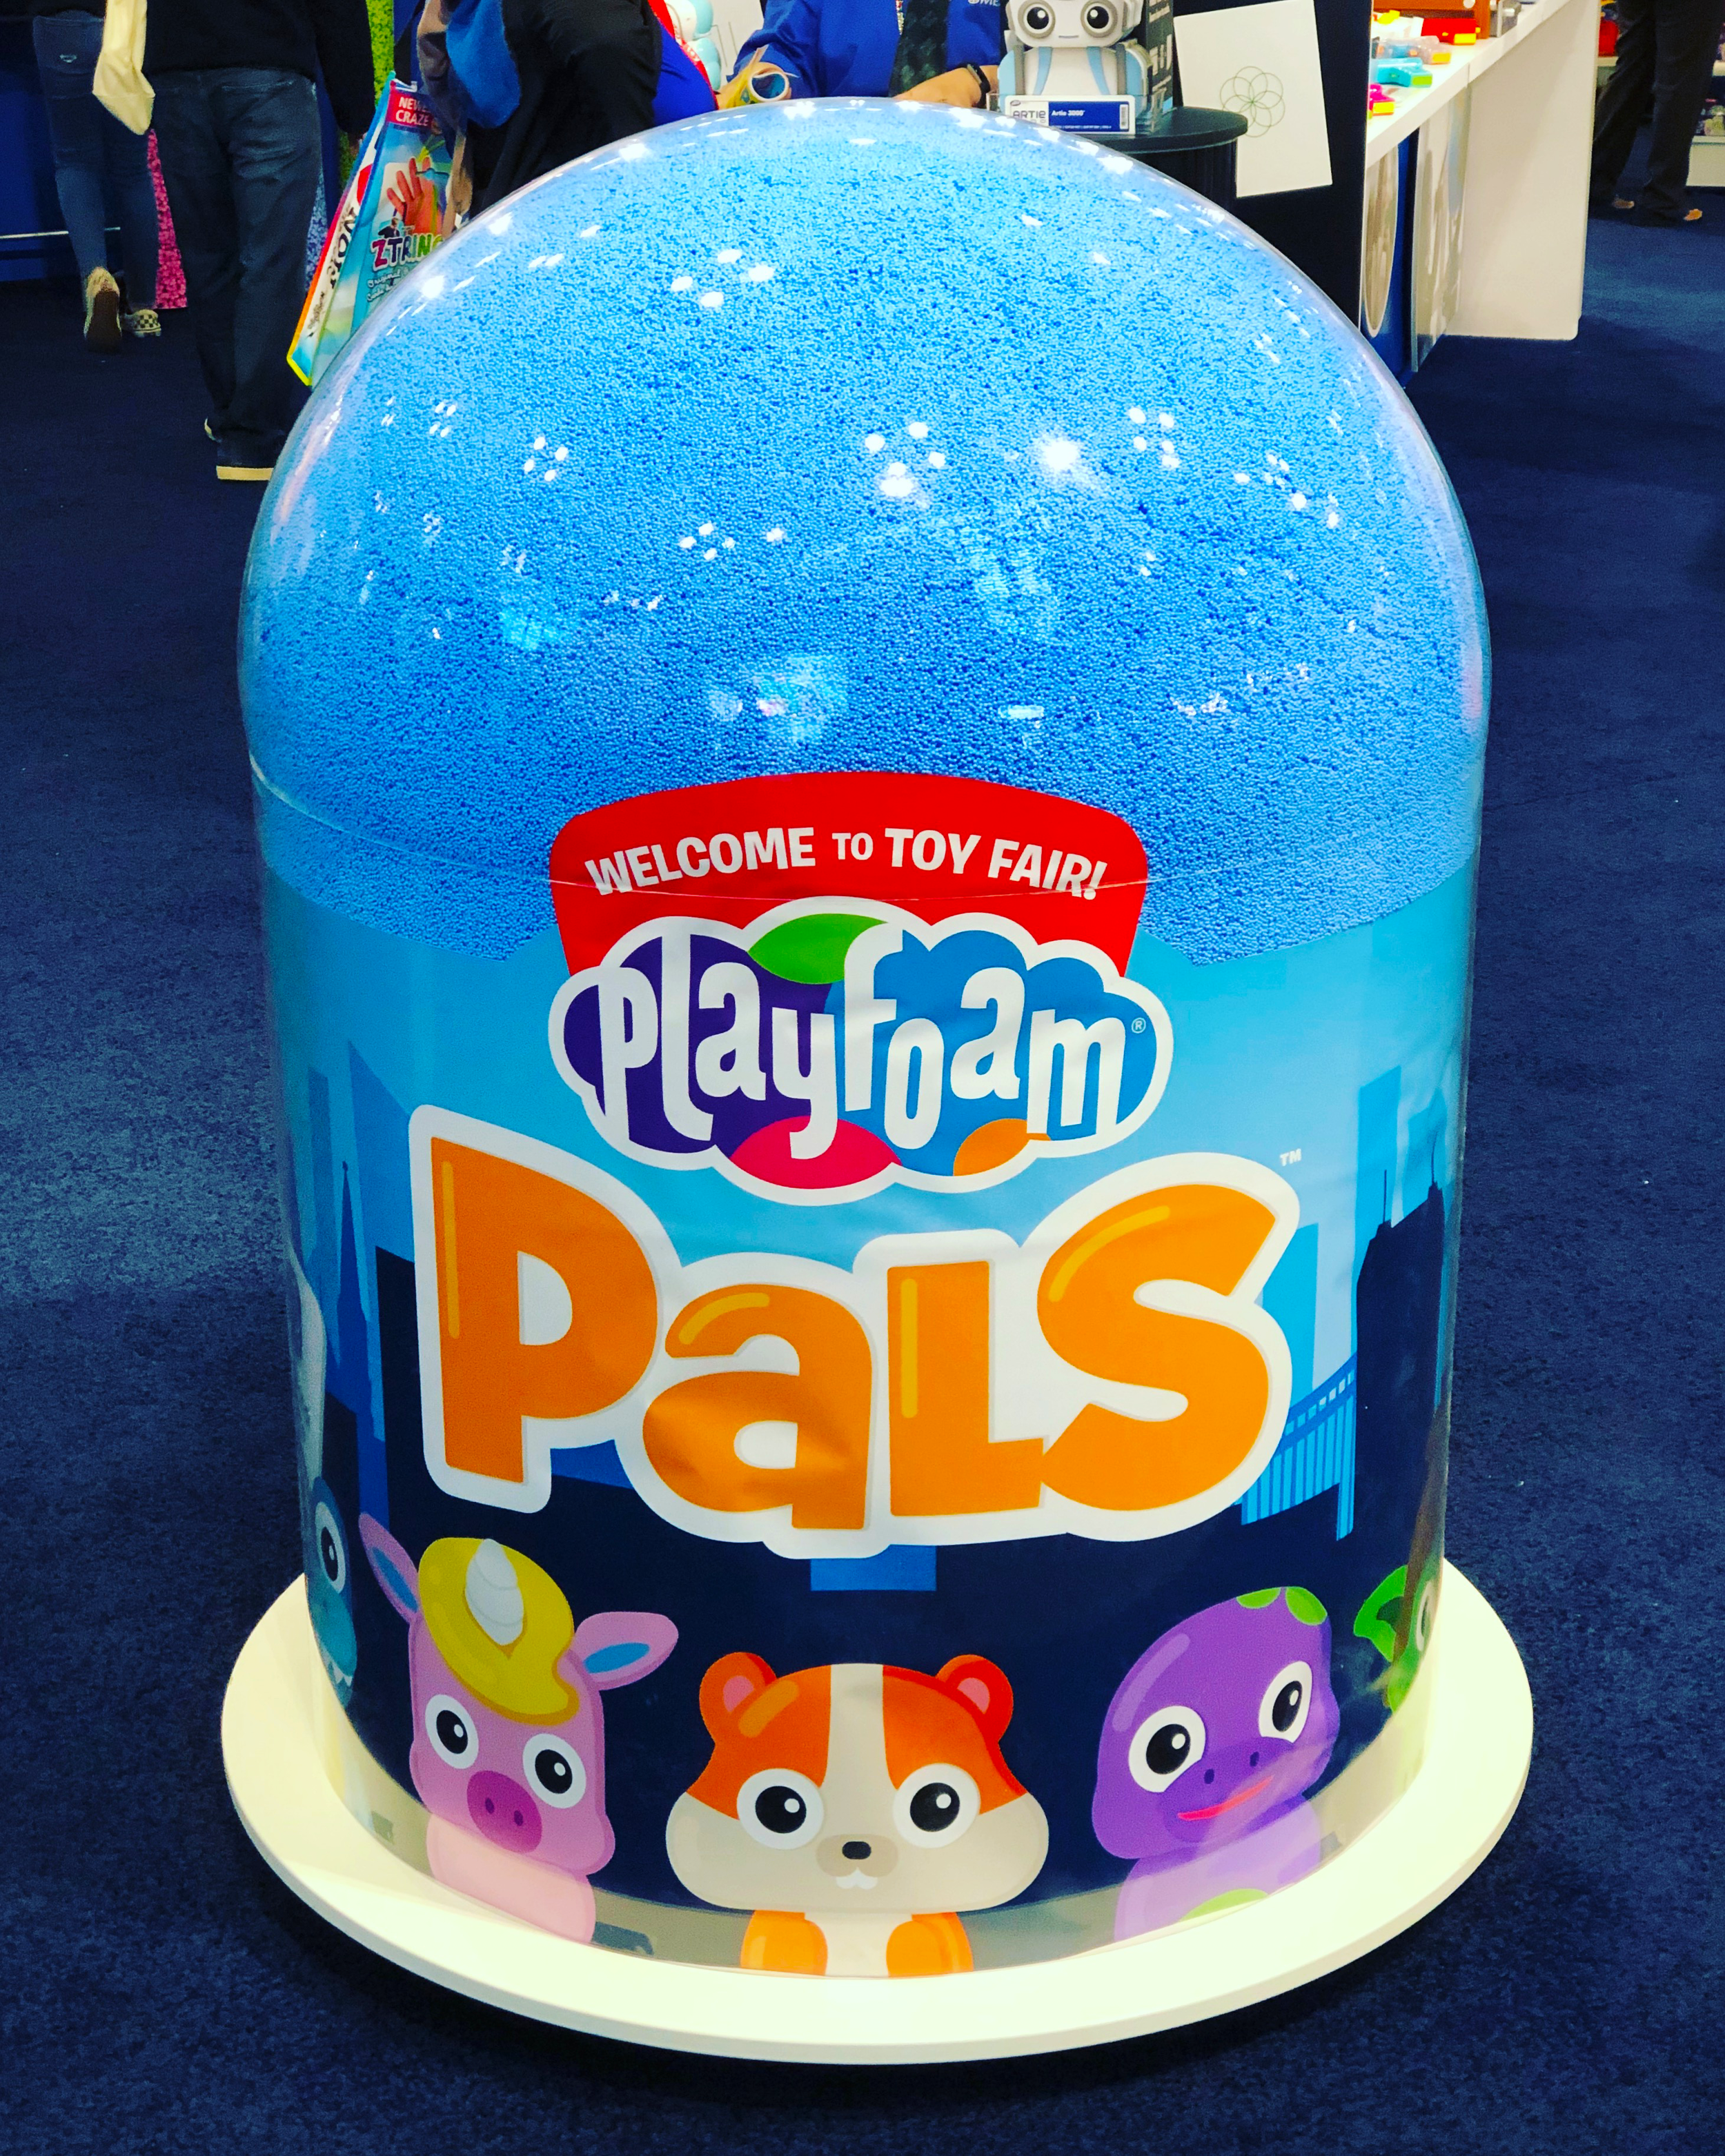 Playfoam Pals Giant Dome Display